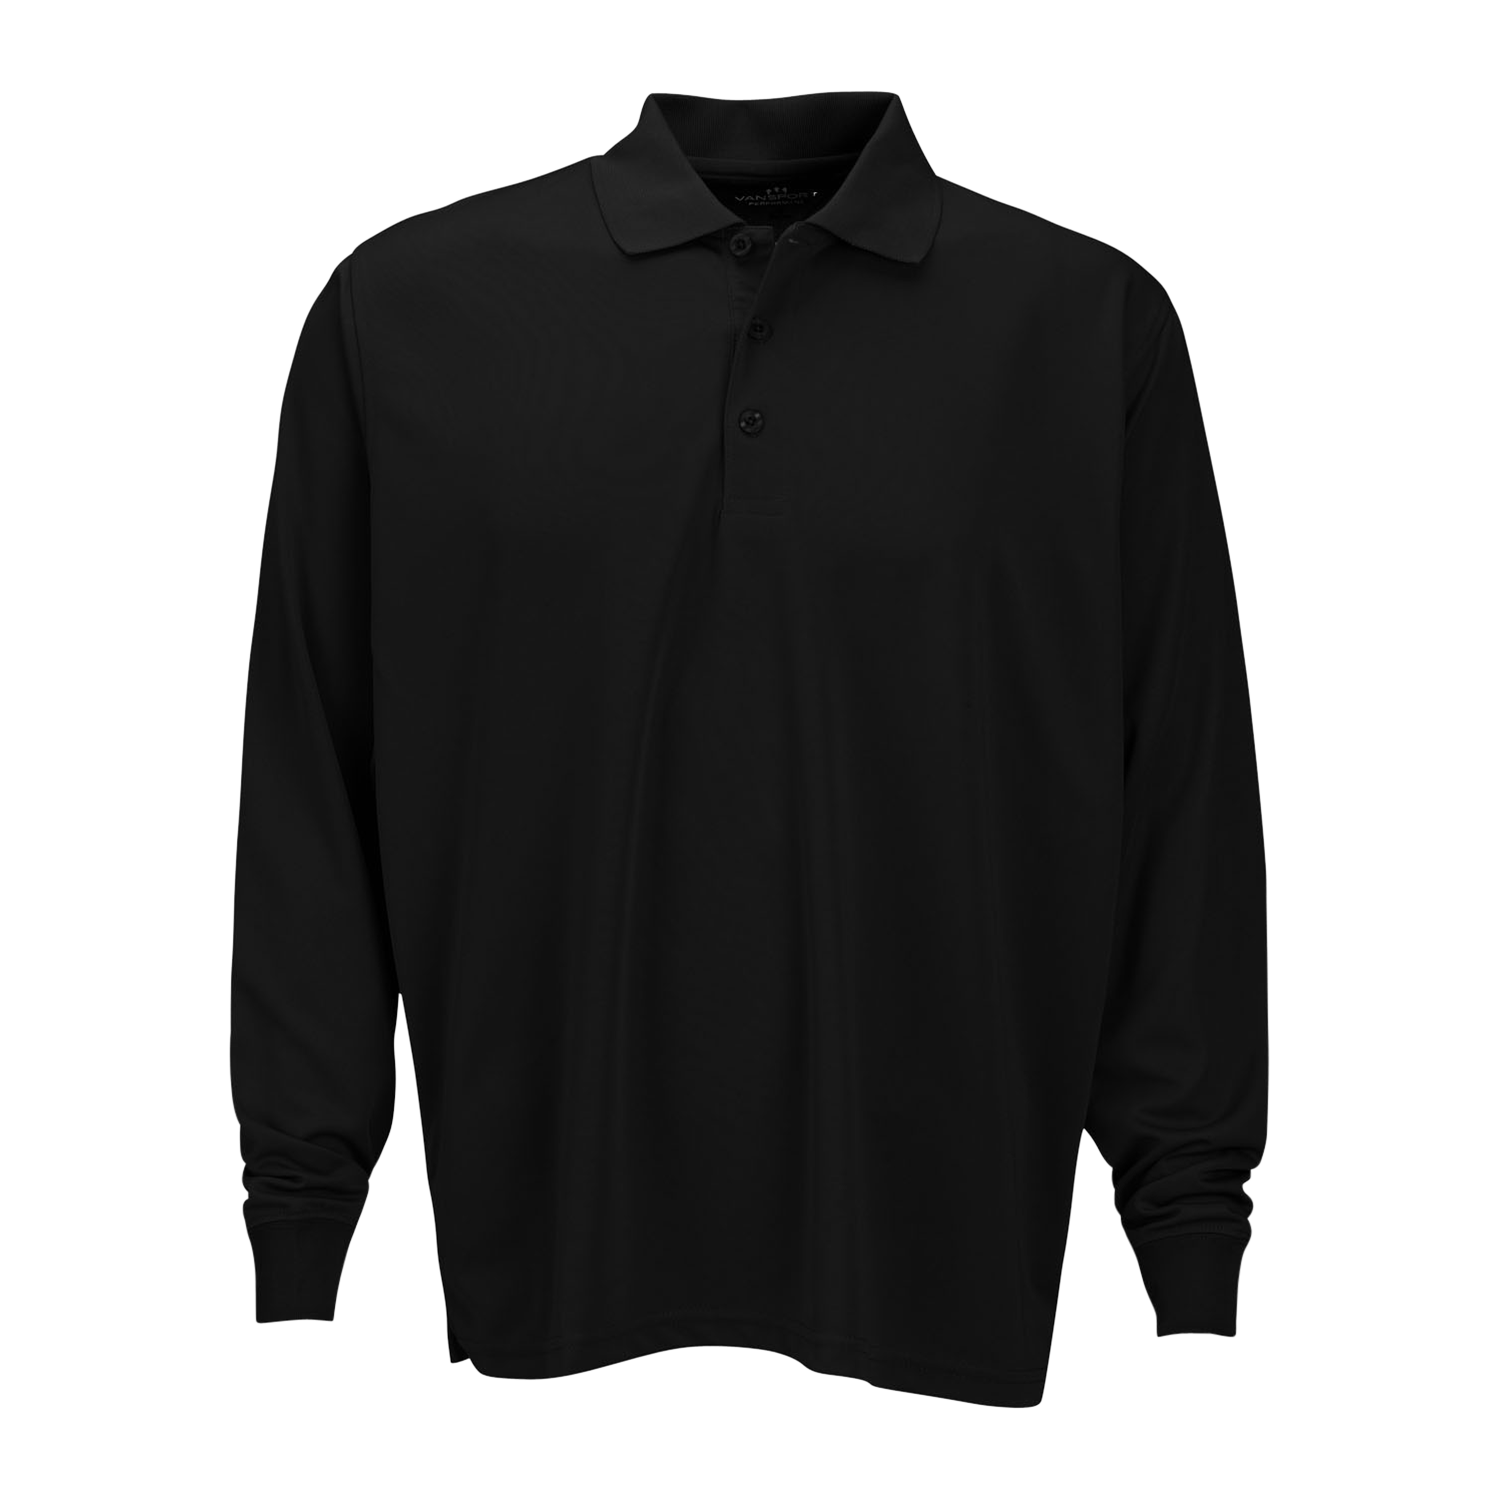 D1833MT Mens Tall Omega Long Sleeve Solid Mesh Tech Polo